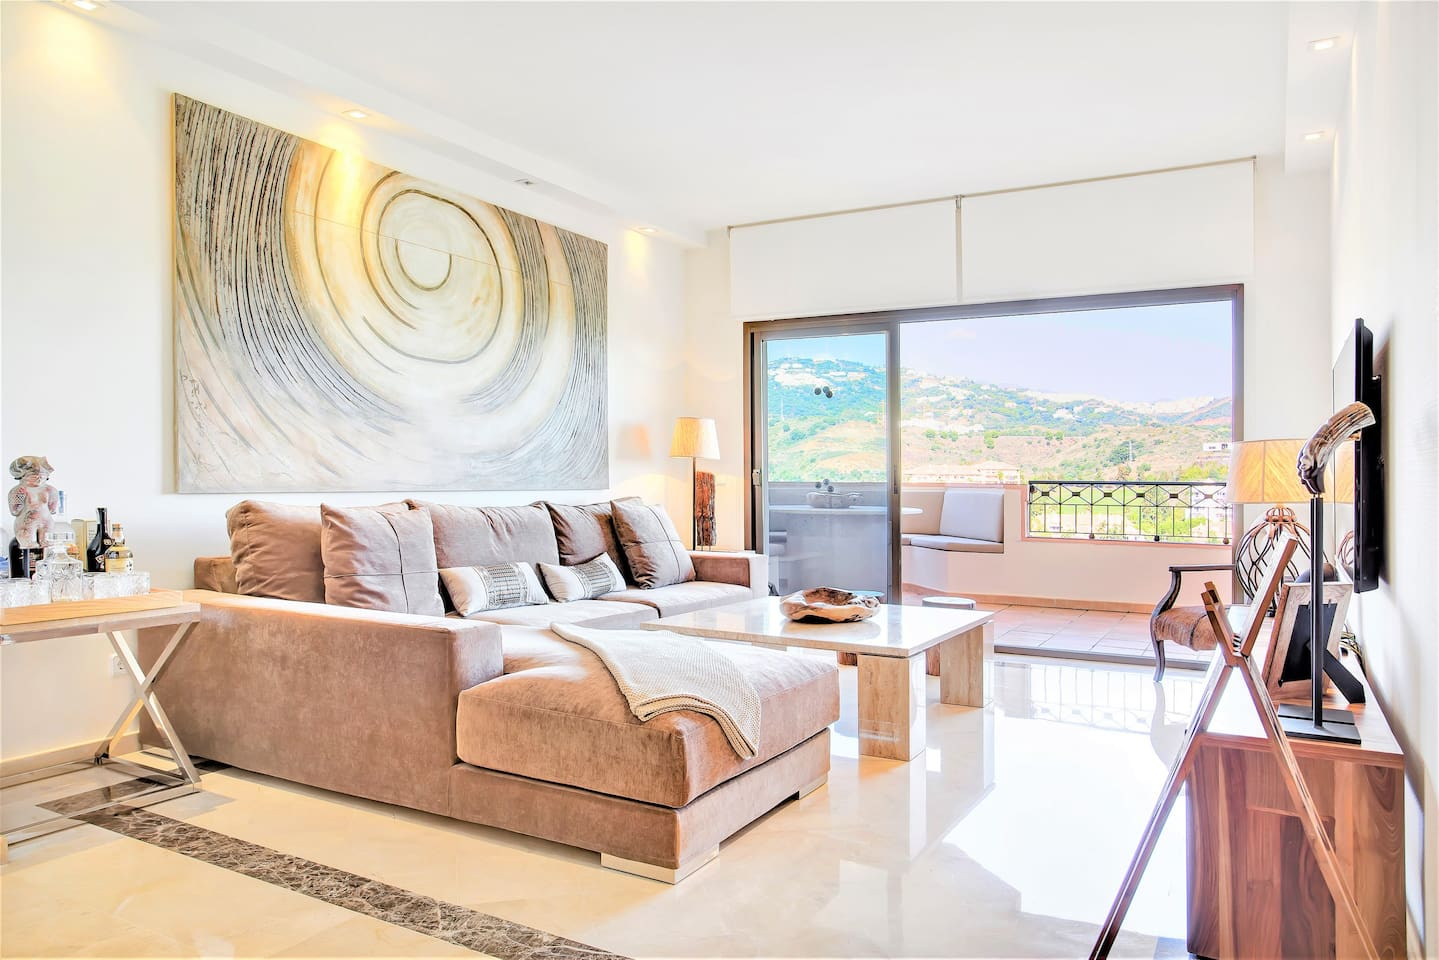 With views to die for and all-day sun streaming in from every angle, your holiday home invites you to enjoy the beauty of Marbella's stunning landscape every minute of every day.